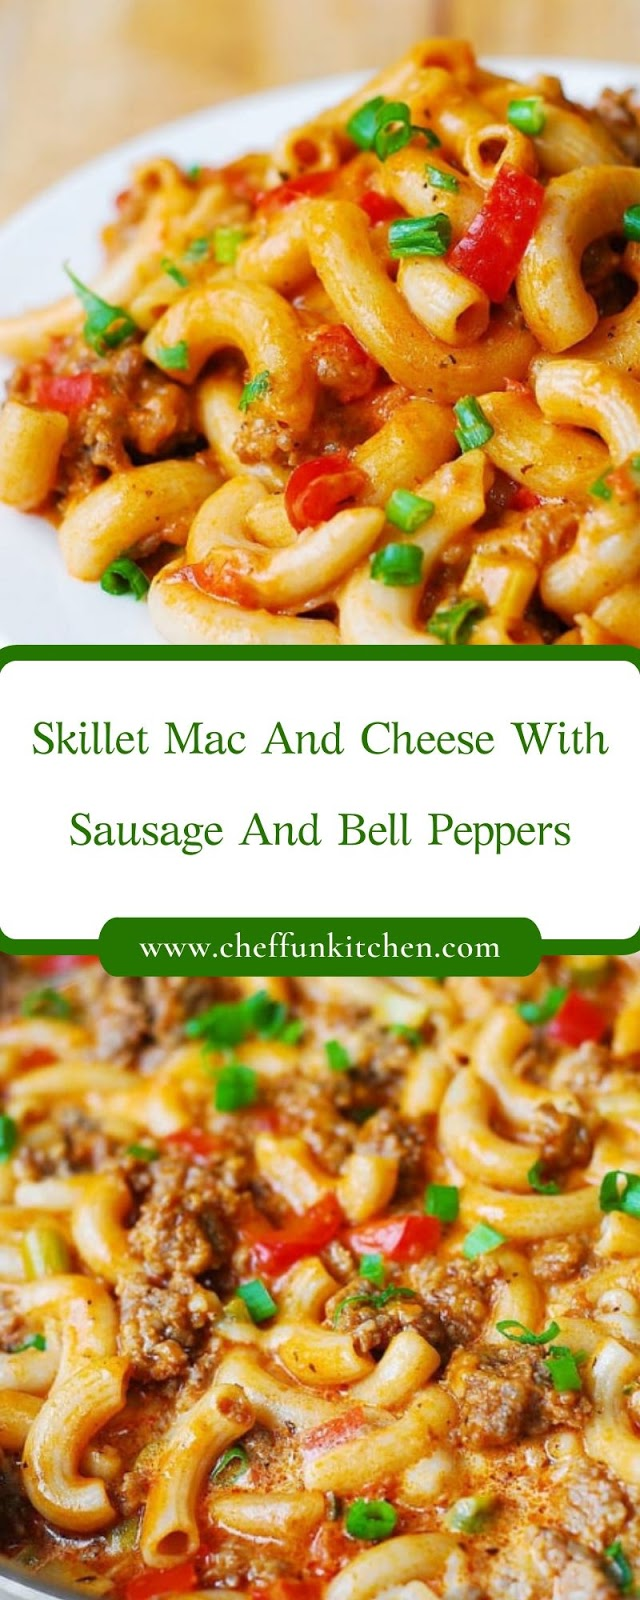 Skillet Mac and Cheese with Sausage and Bell Peppers